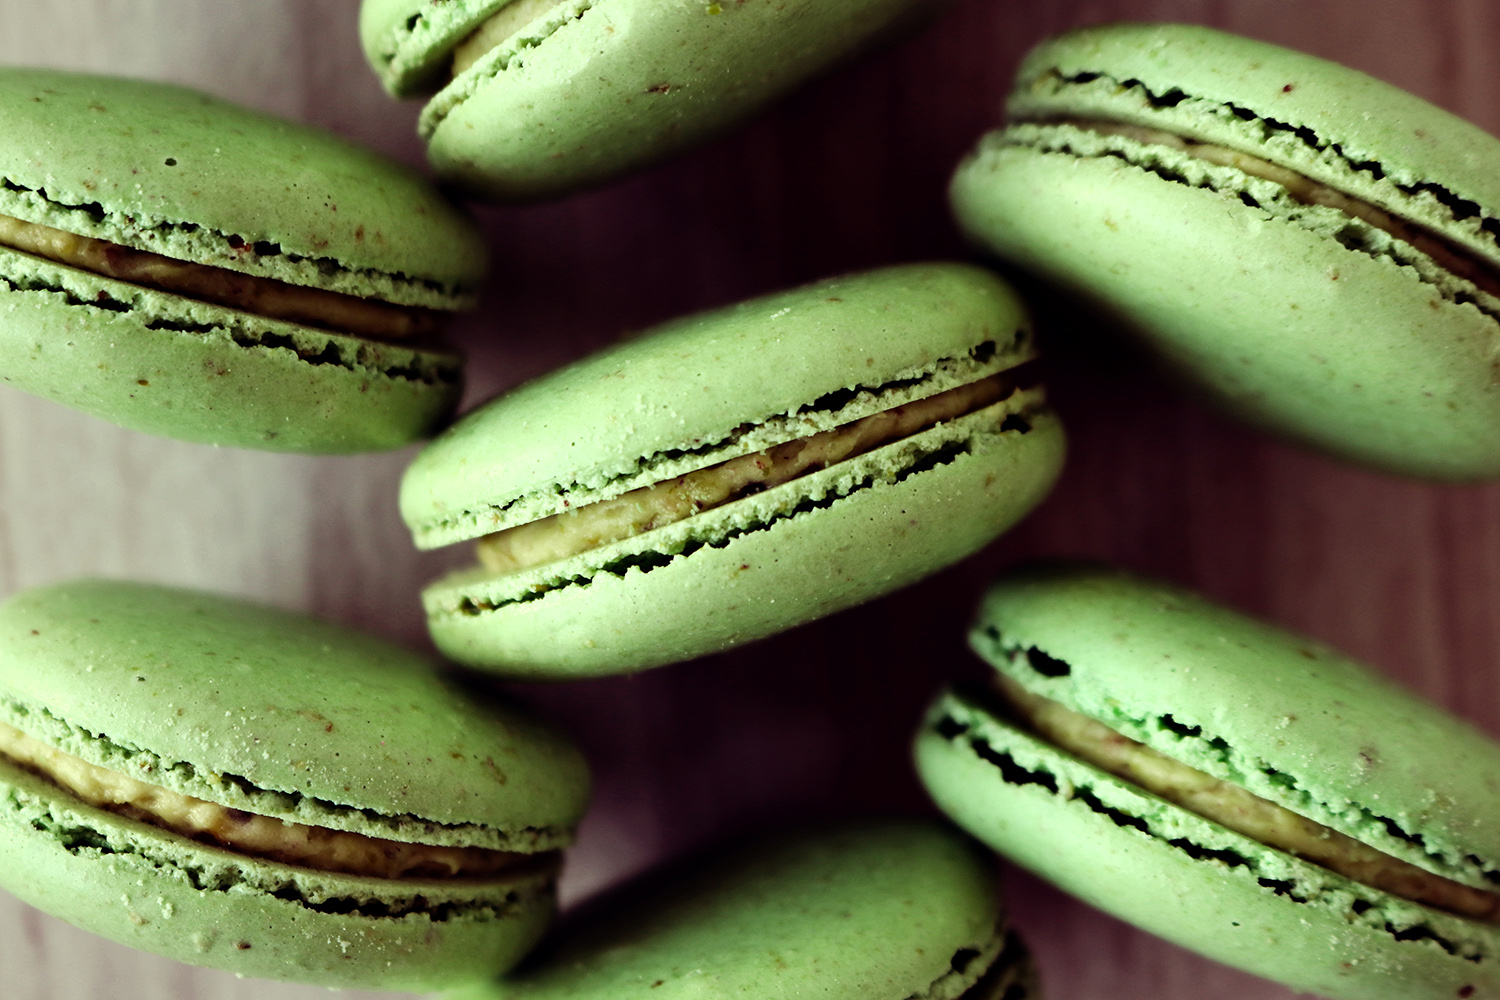 Over 20 delicious macaron flavors to choose from, pistachio macarons, macaroons, best macarons, macarons Houston, macaroons houston, best macaroons houston